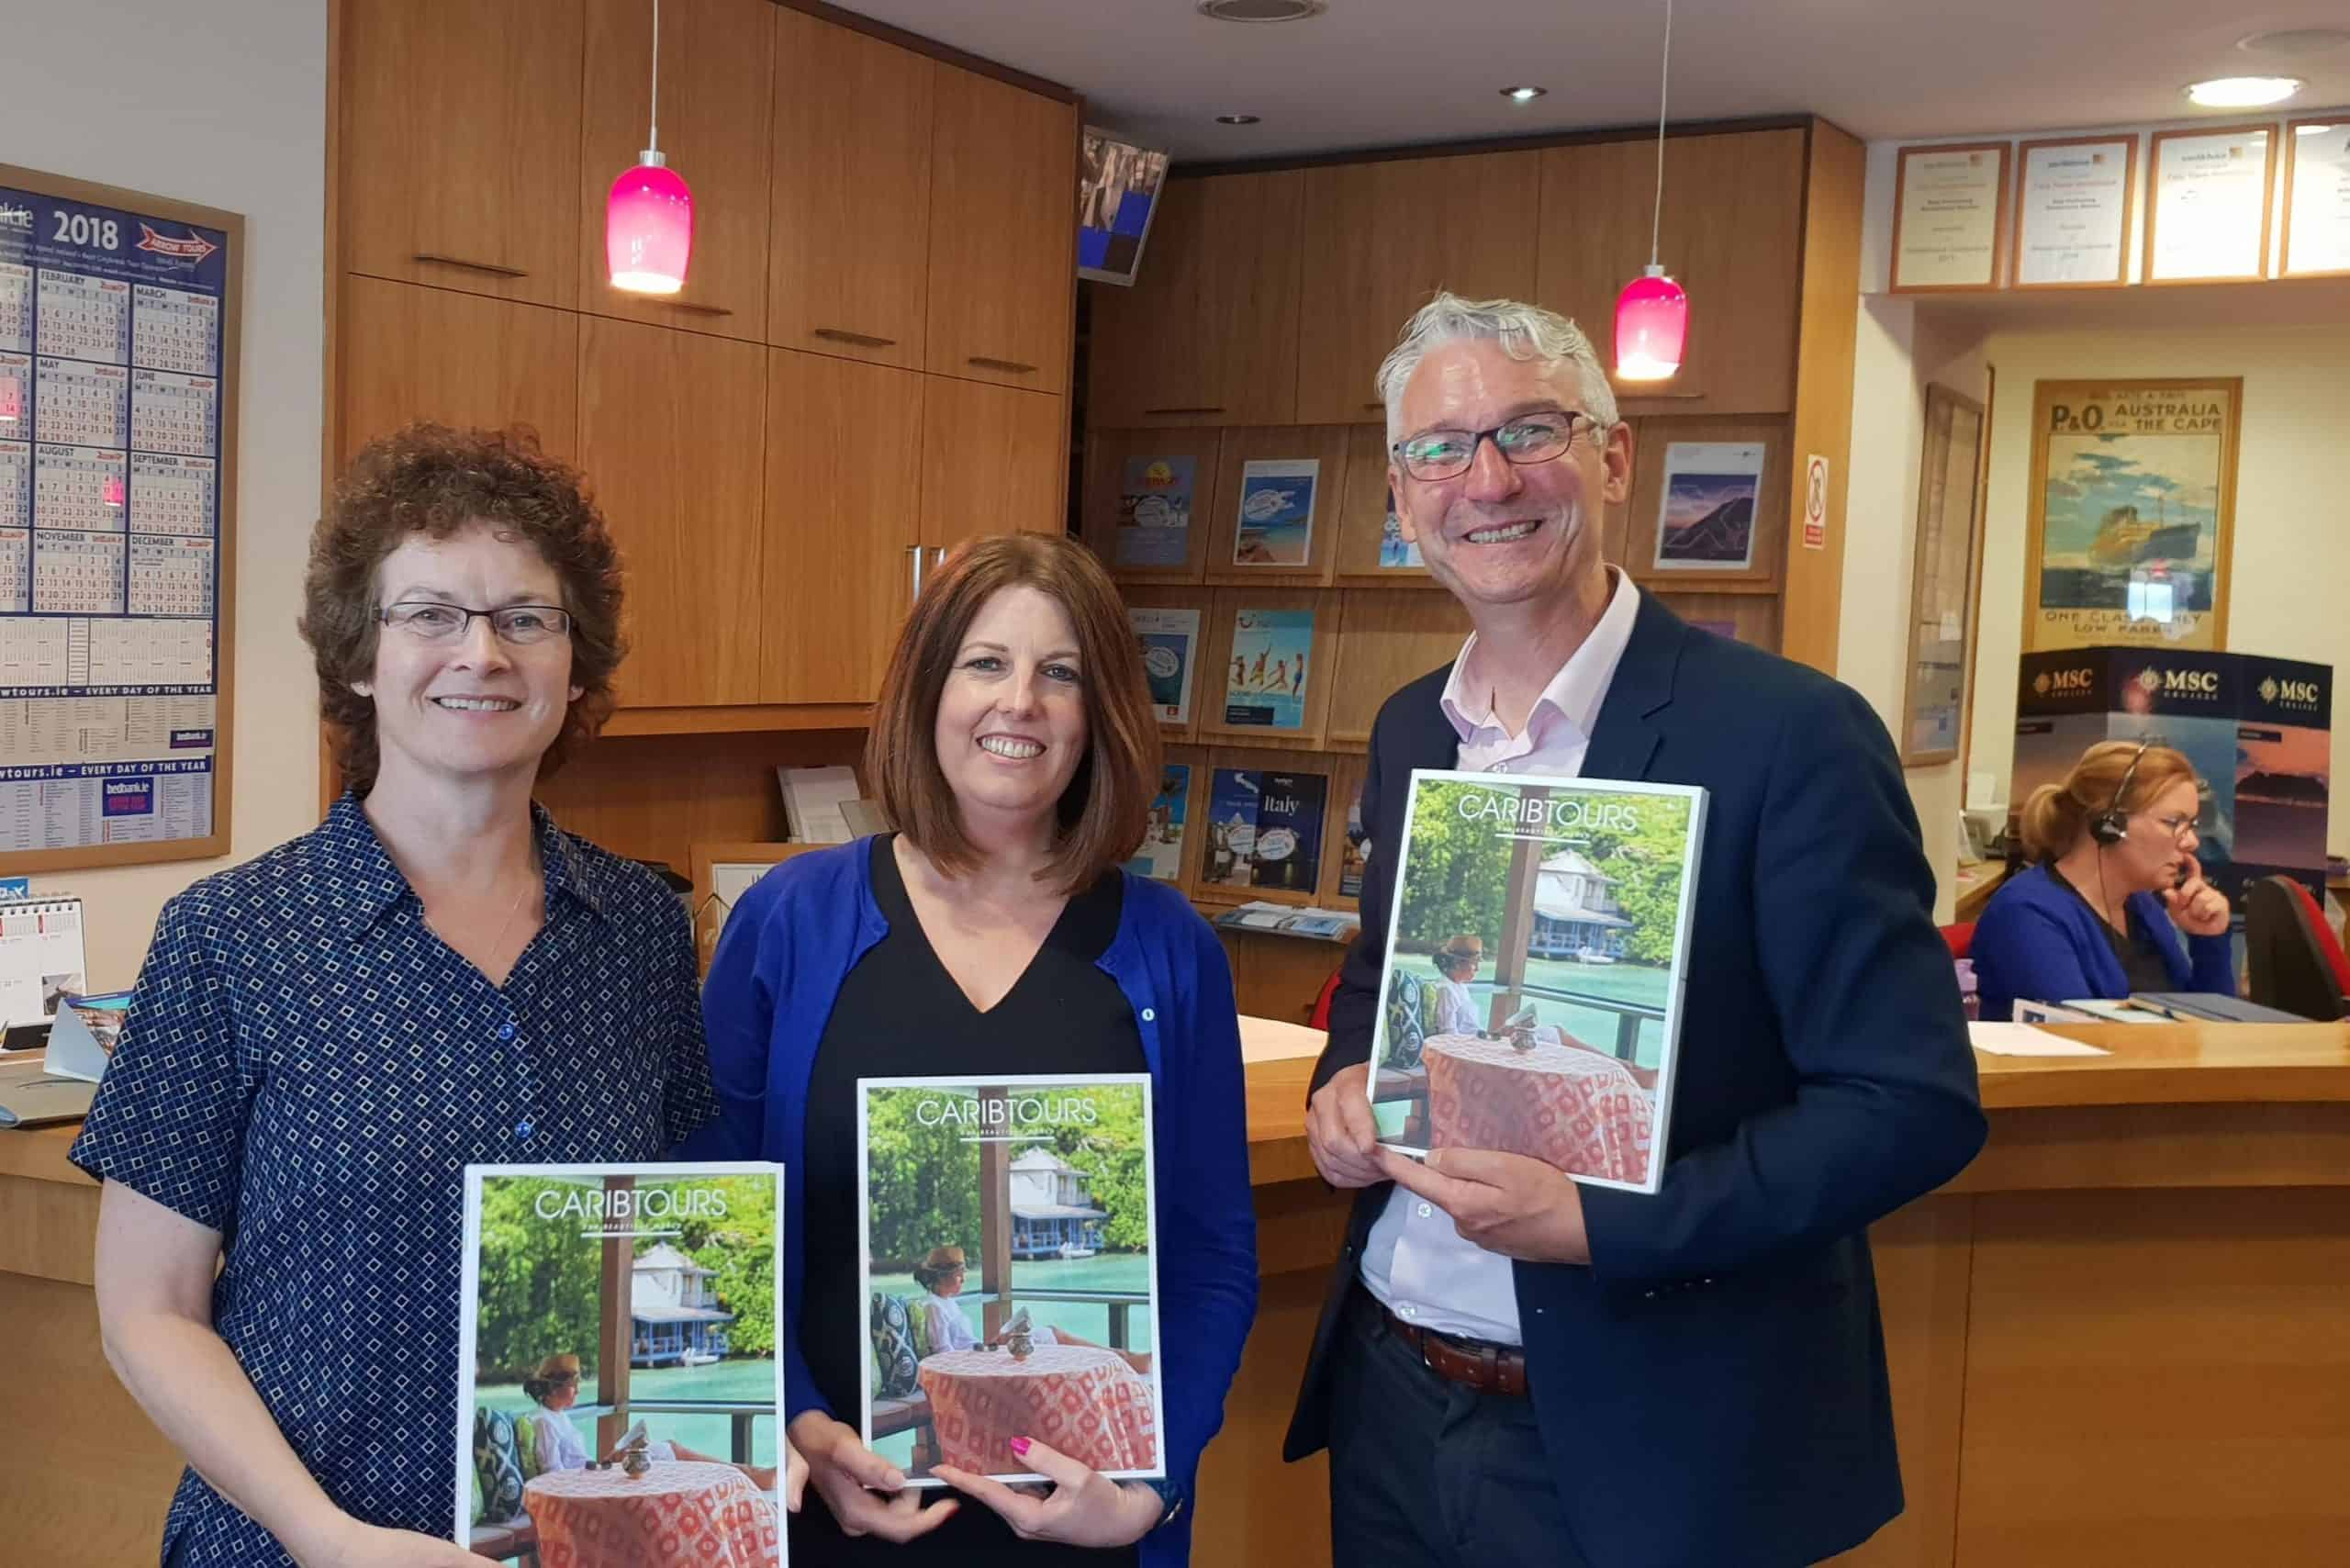 Promoting Caribtours with Fahy Travel Galway